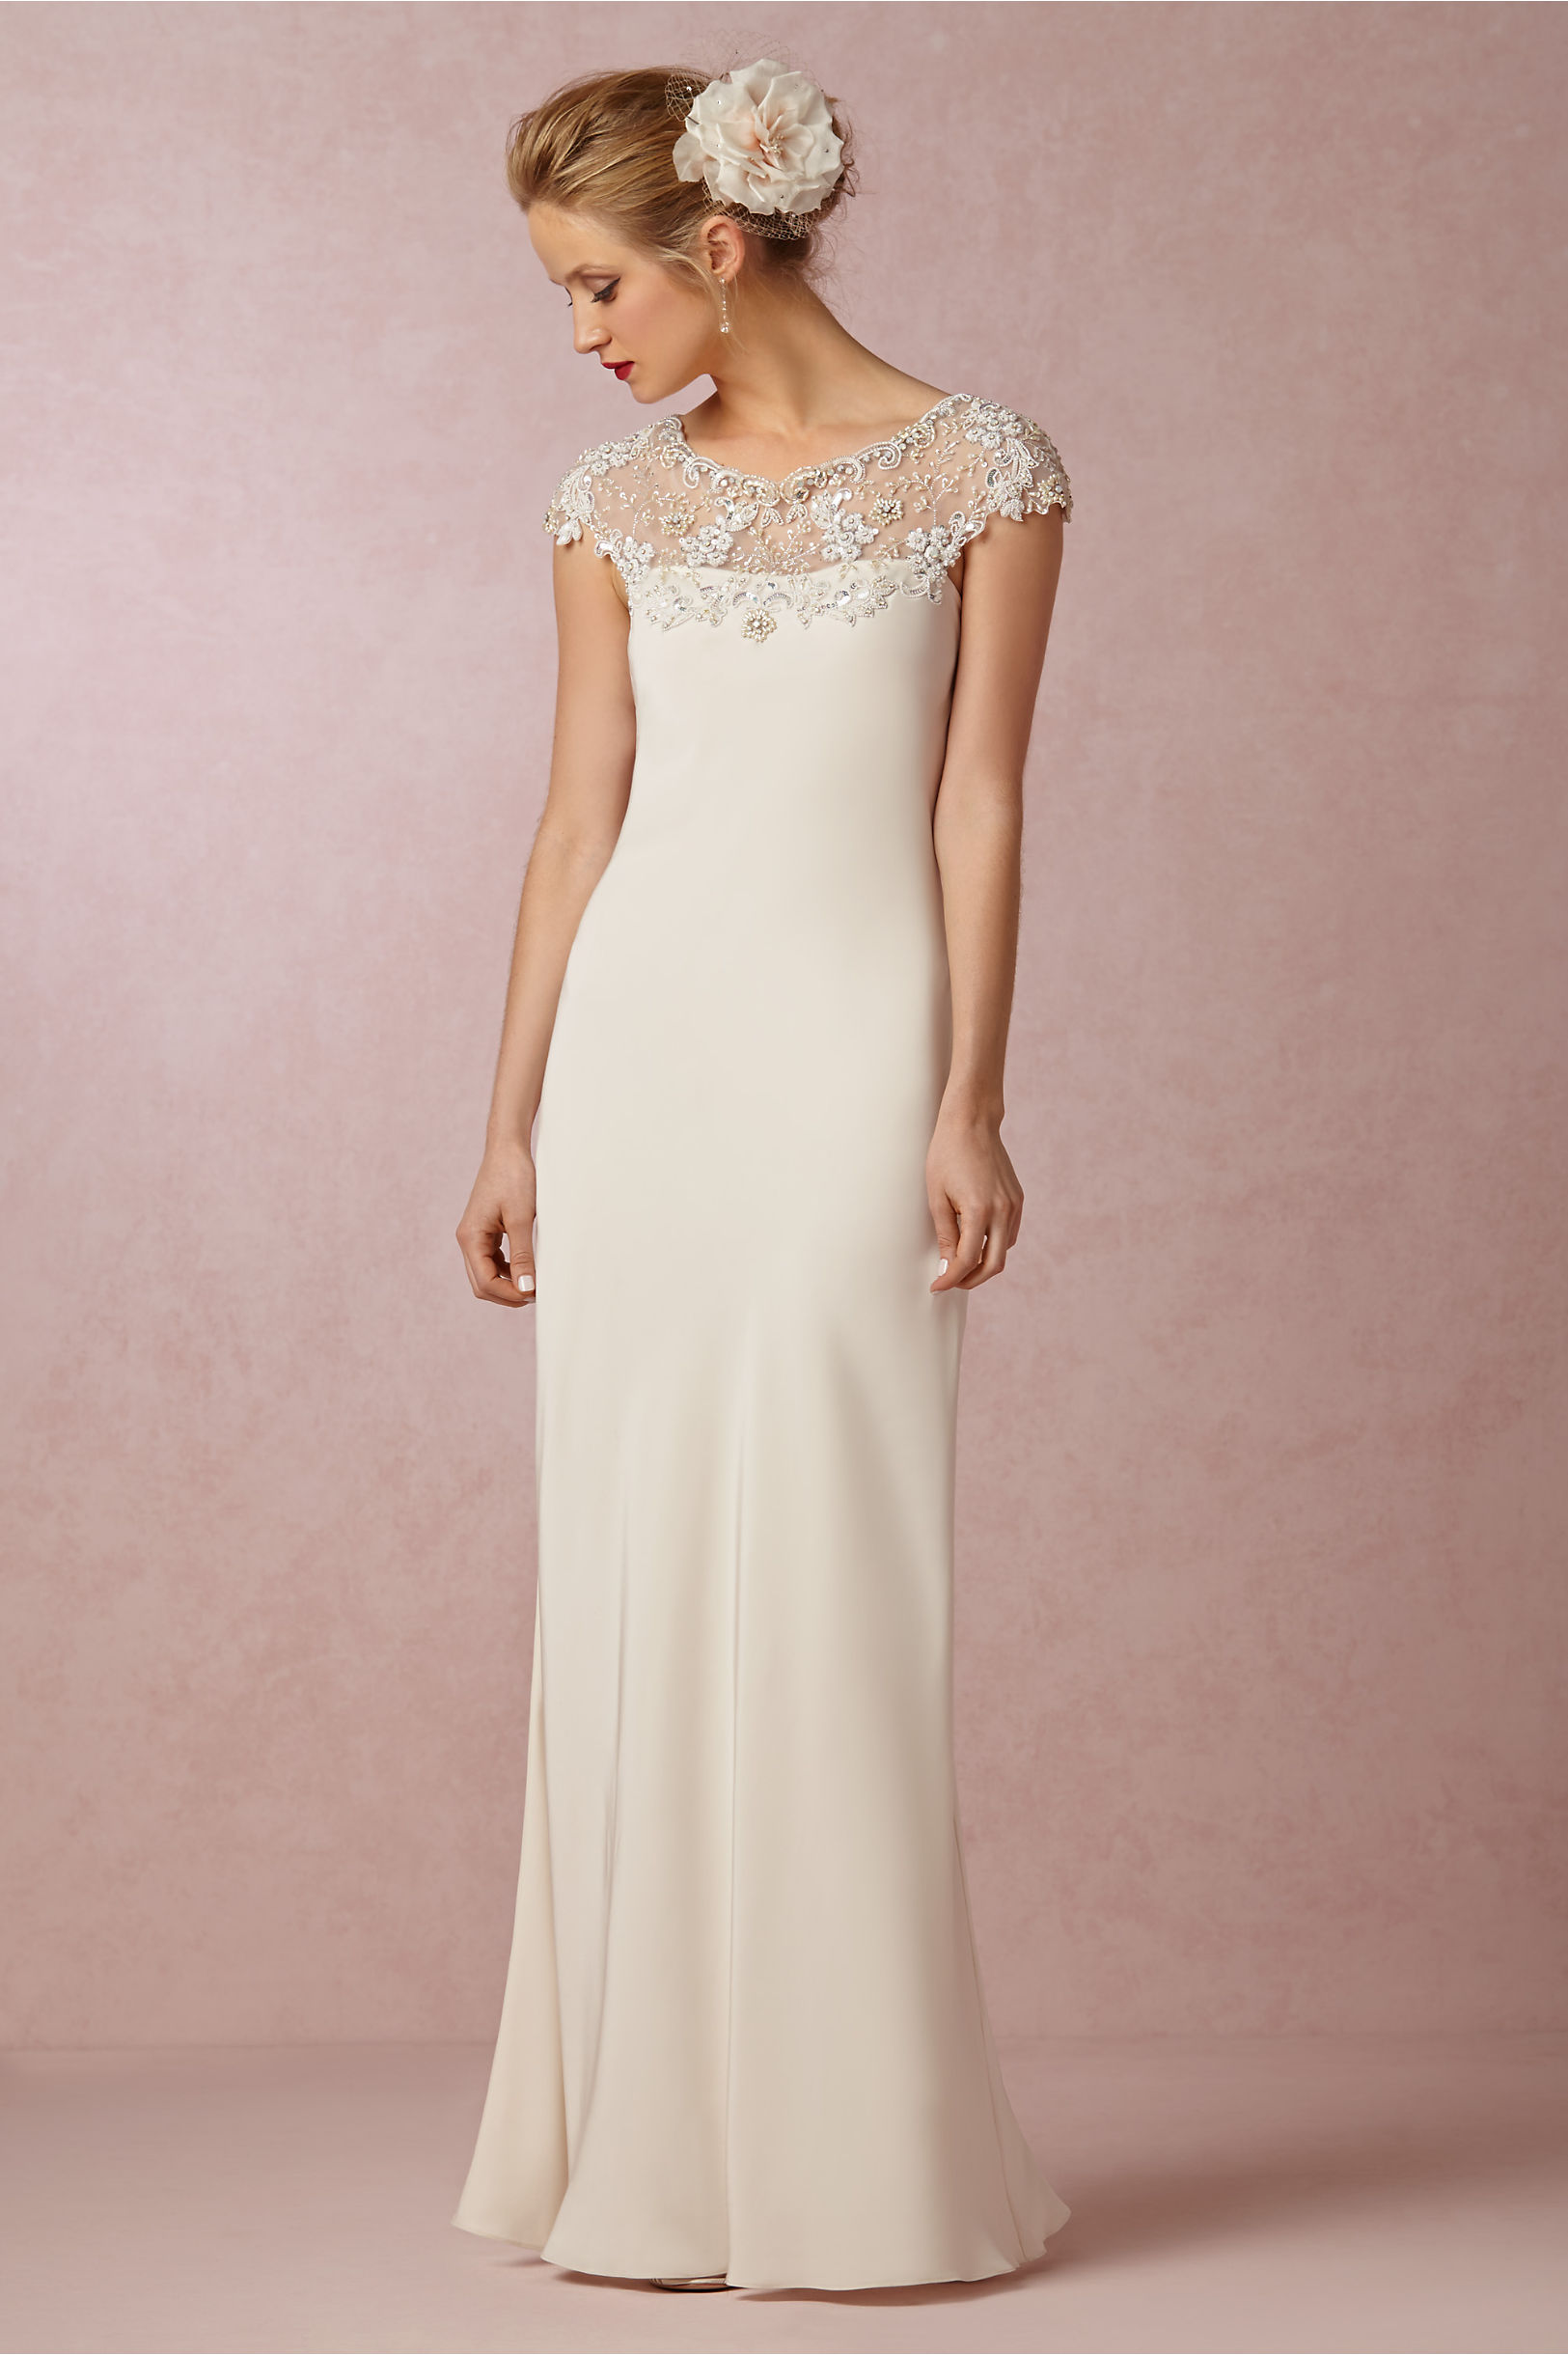 Avalon Gown in Bride | BHLDN